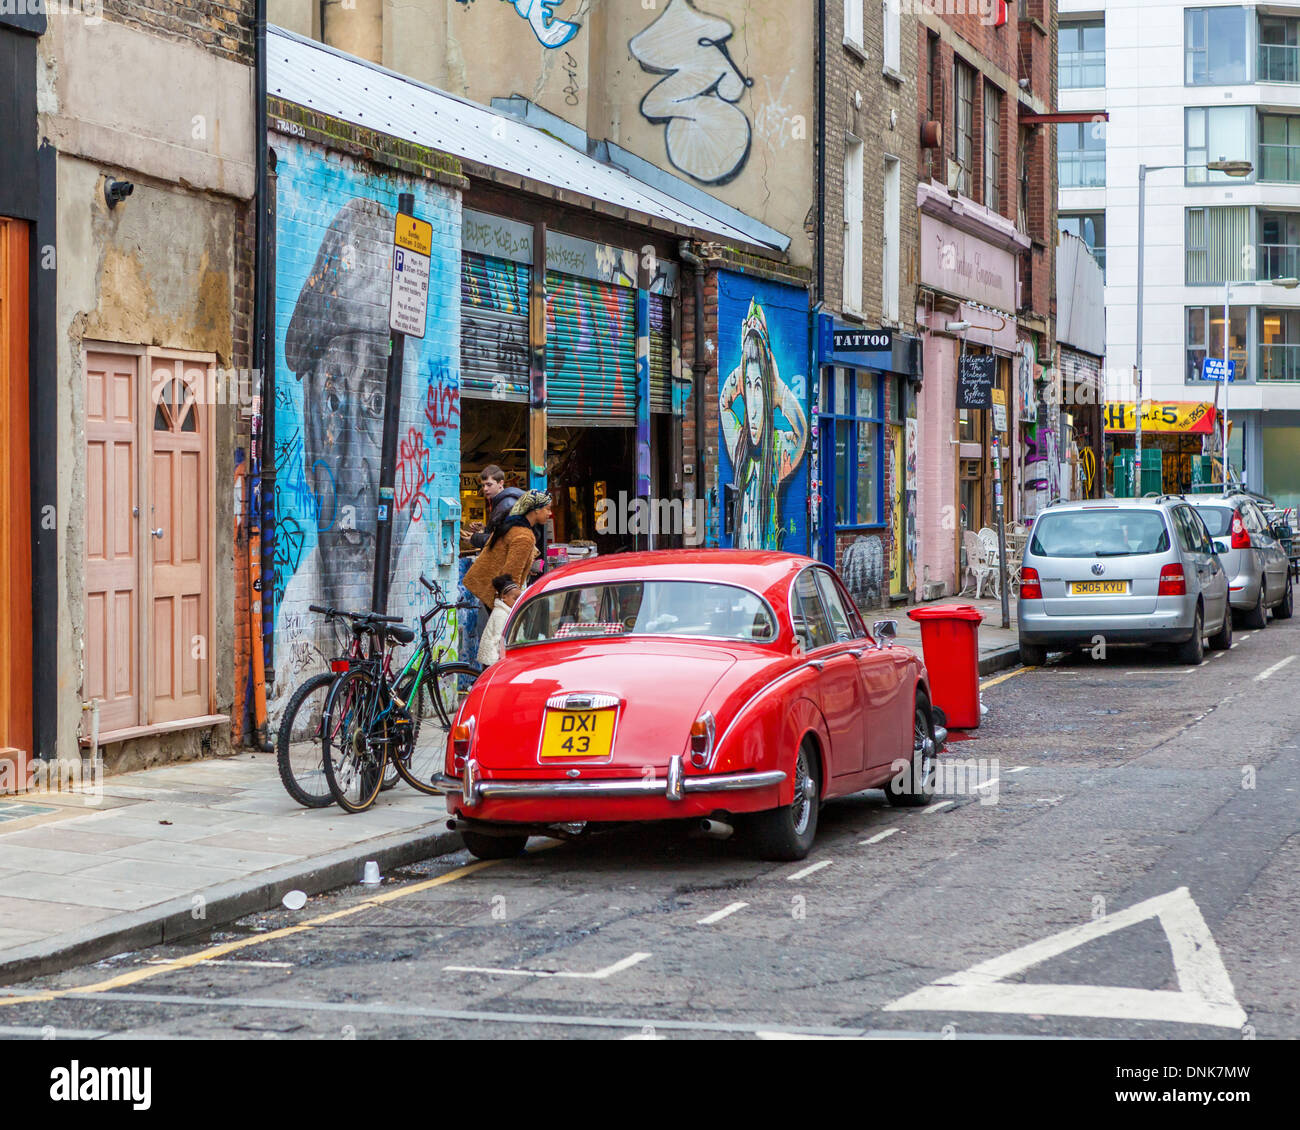 Parked Classic Red Car Charlie Burns Street Art And